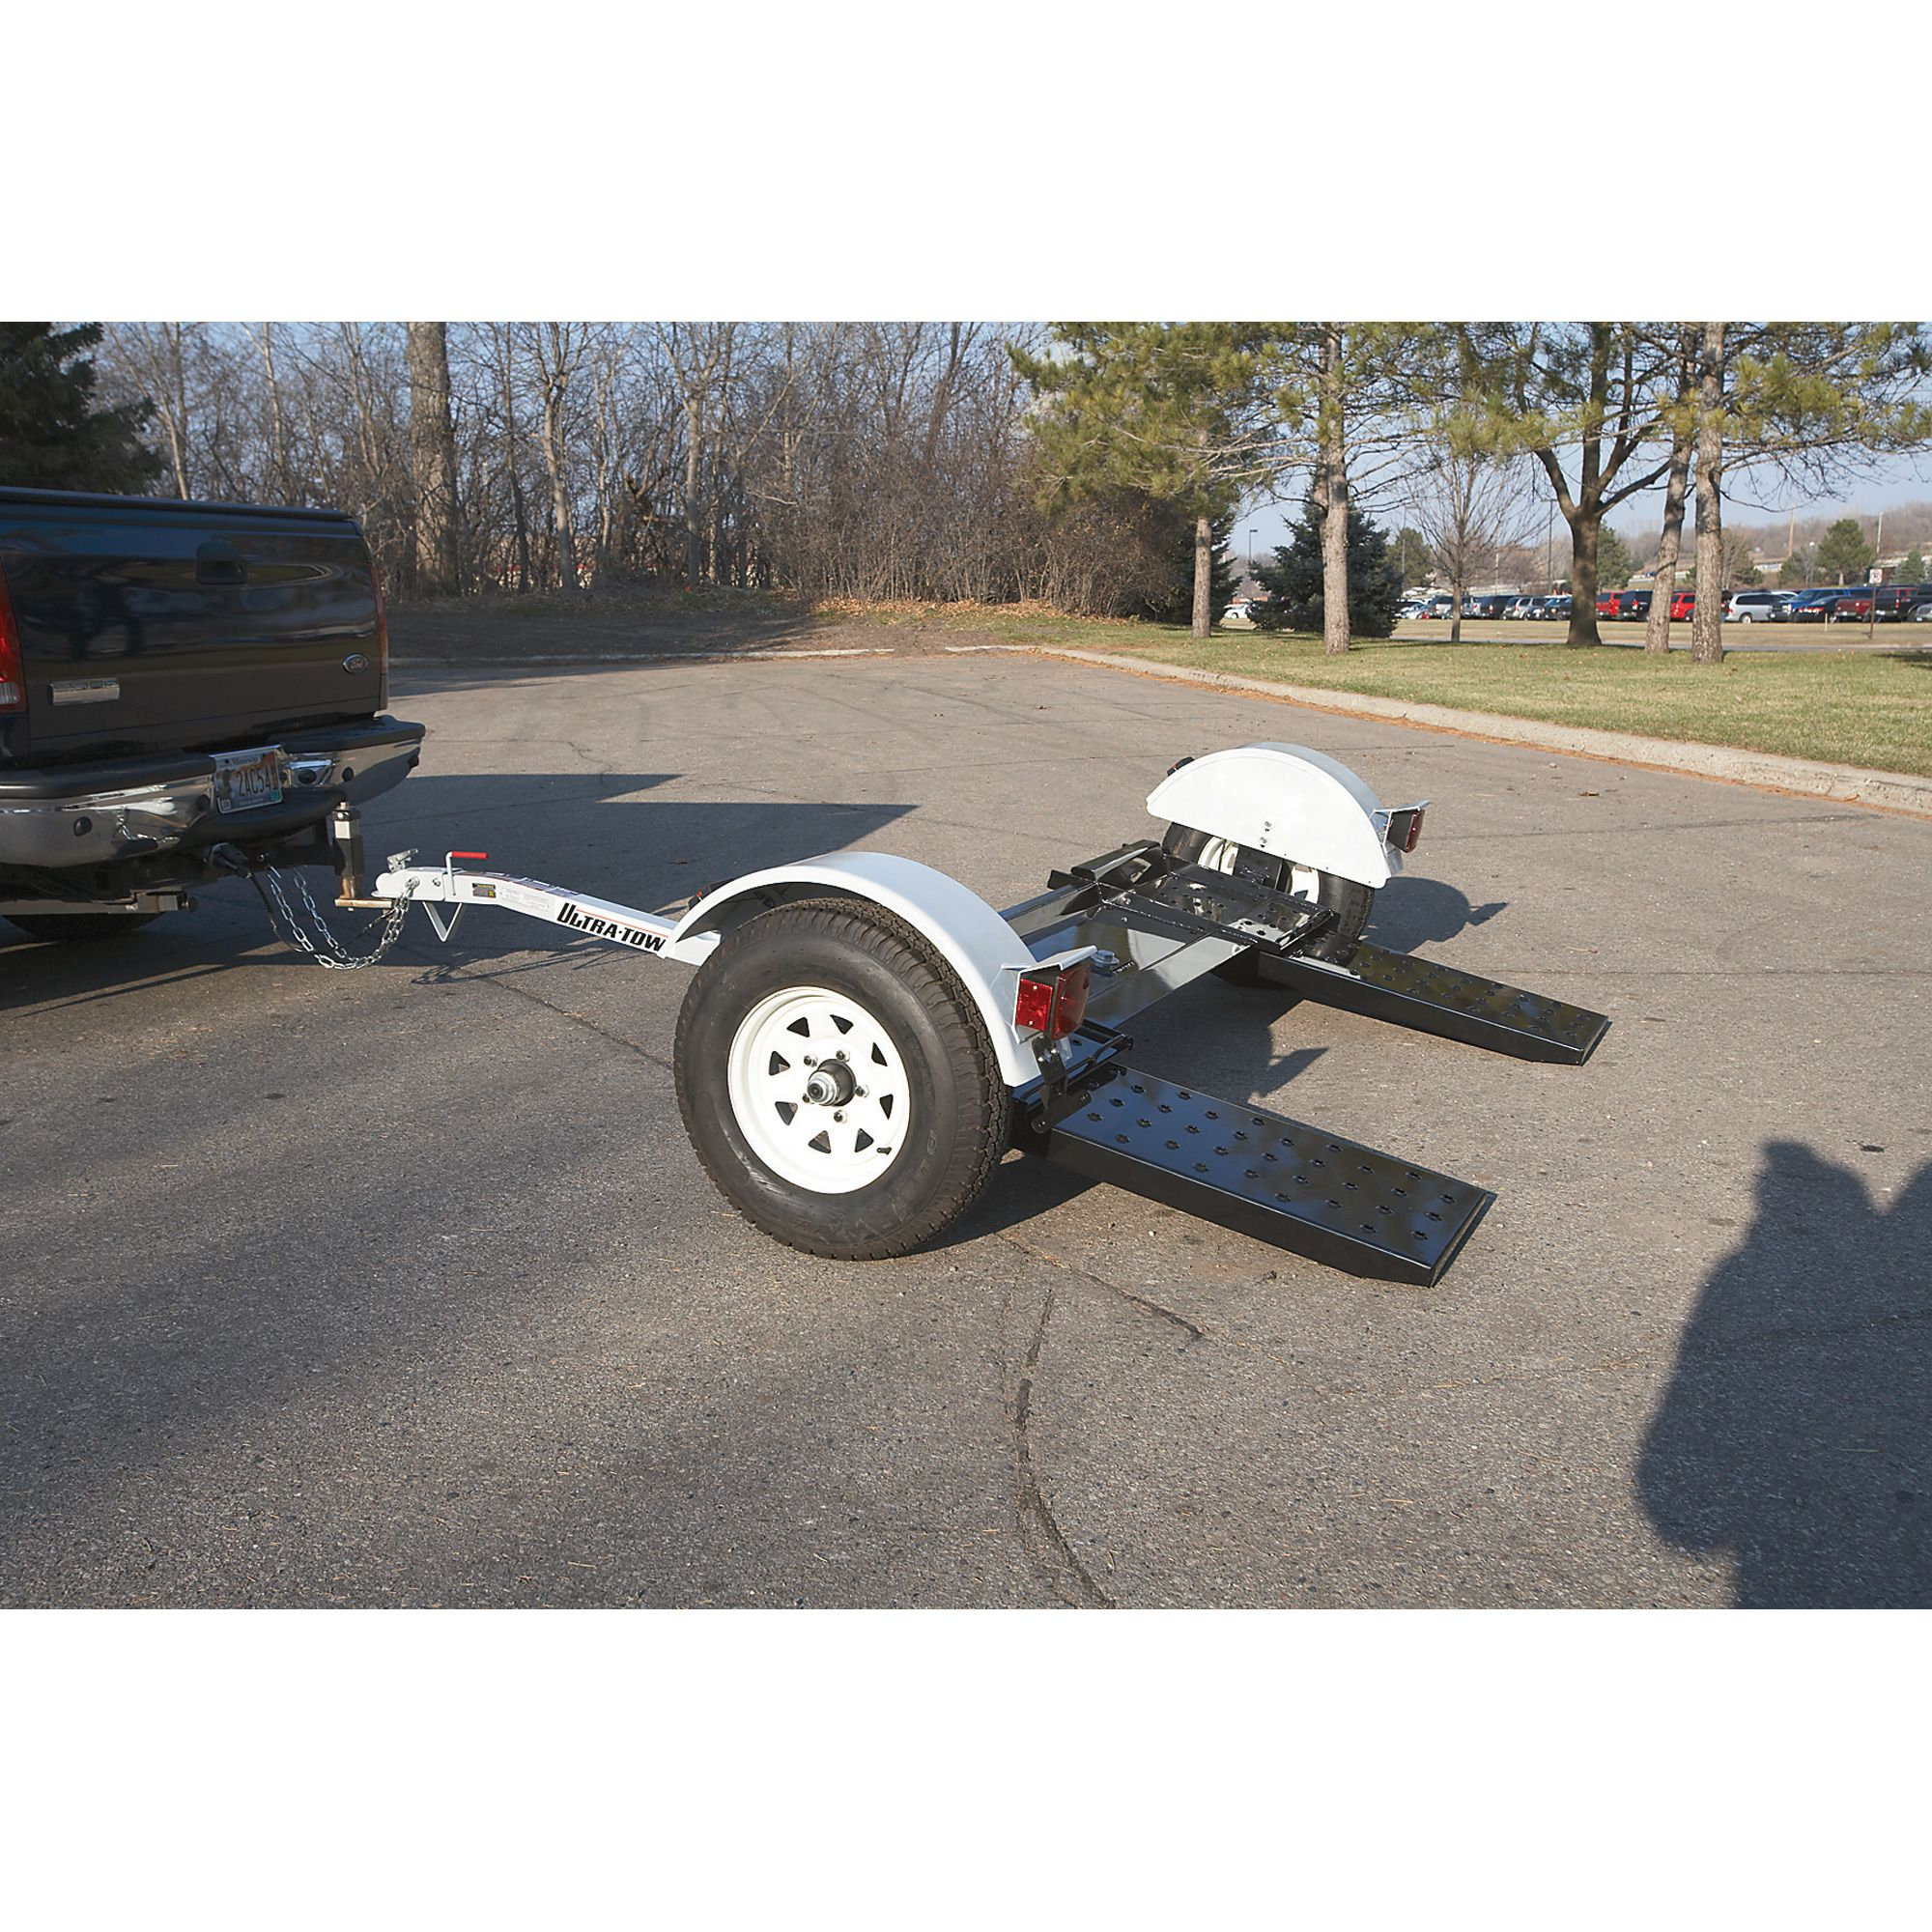 Ultra tow car tow dolly 2800 lb load capacity